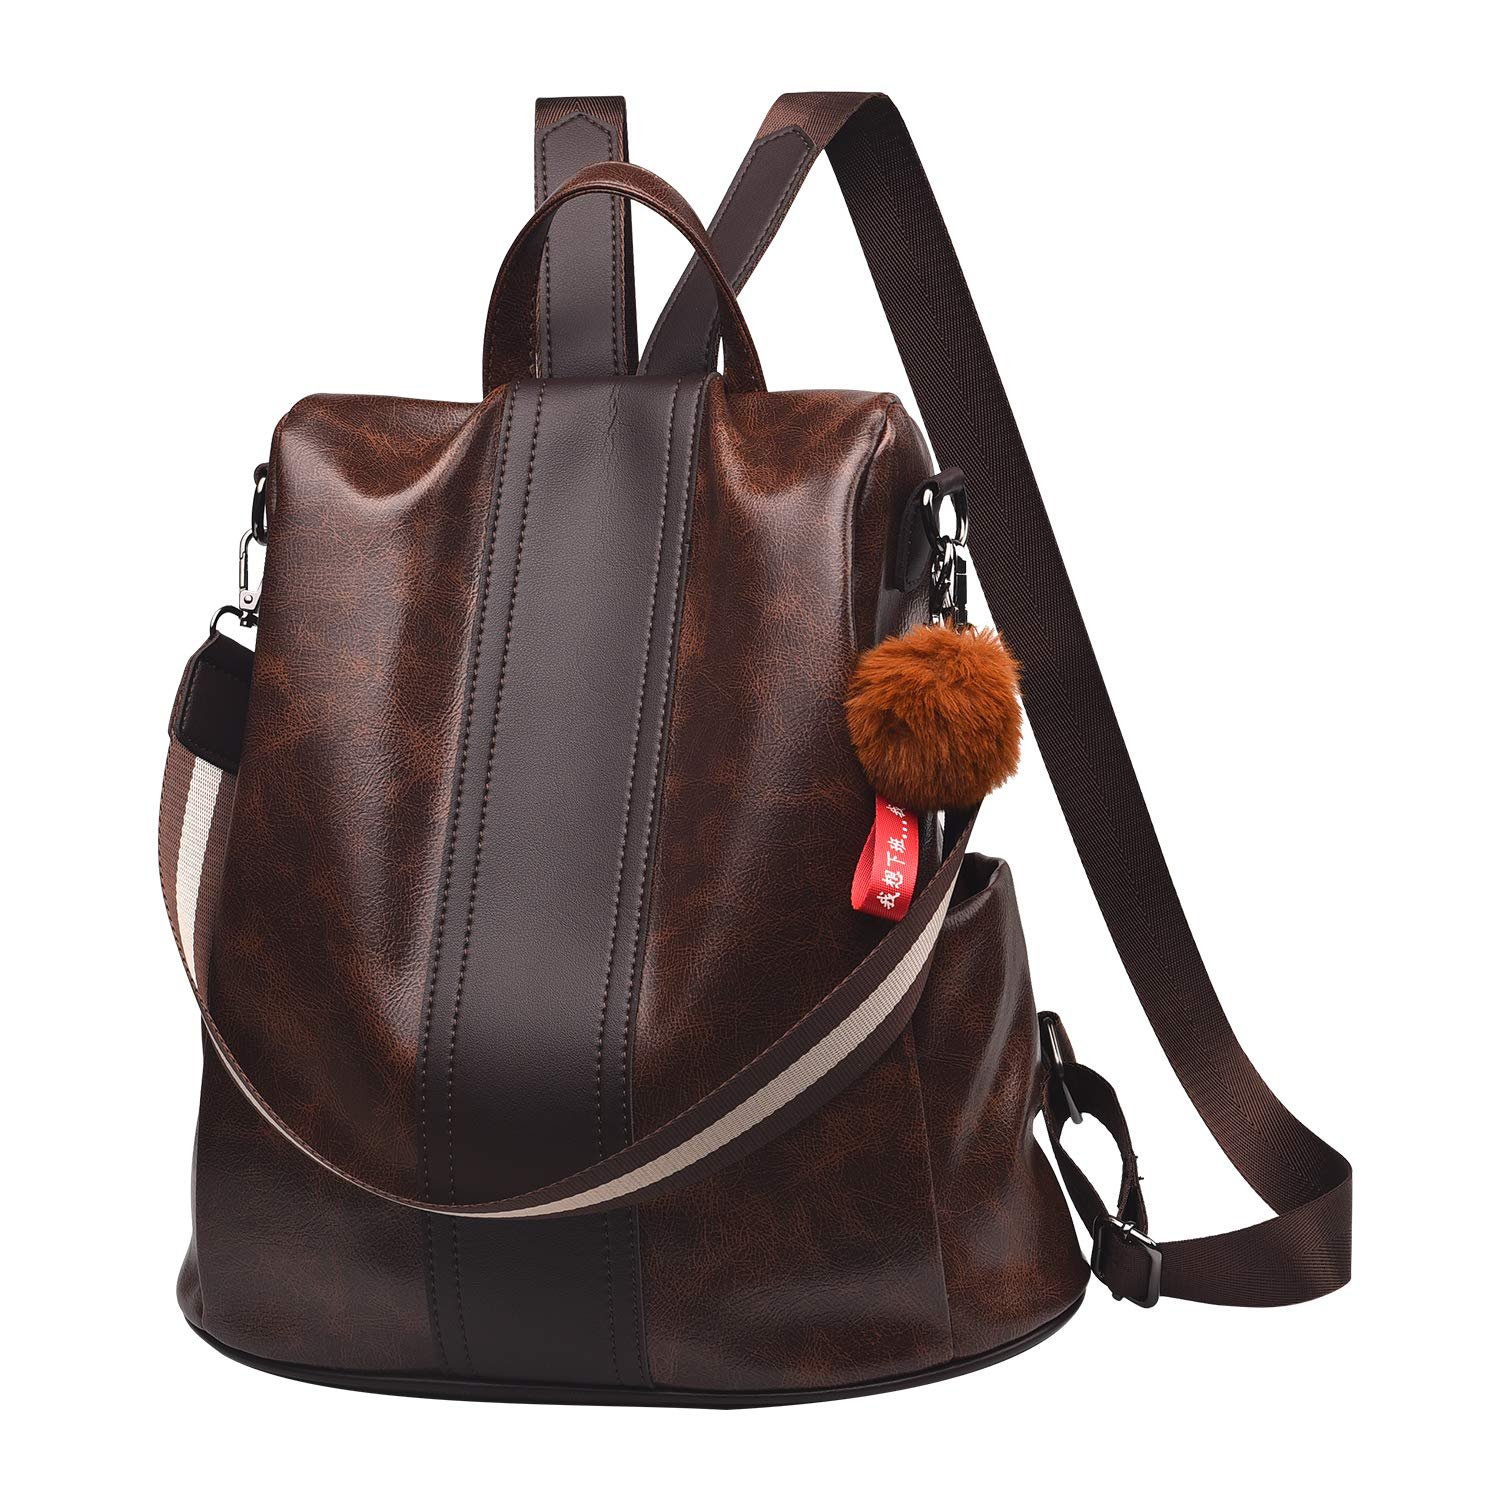 Women Backpack Purse PU Leather Anti-theft Backpack Casual Satchel School Shoulder Bag for Girls(Brown)